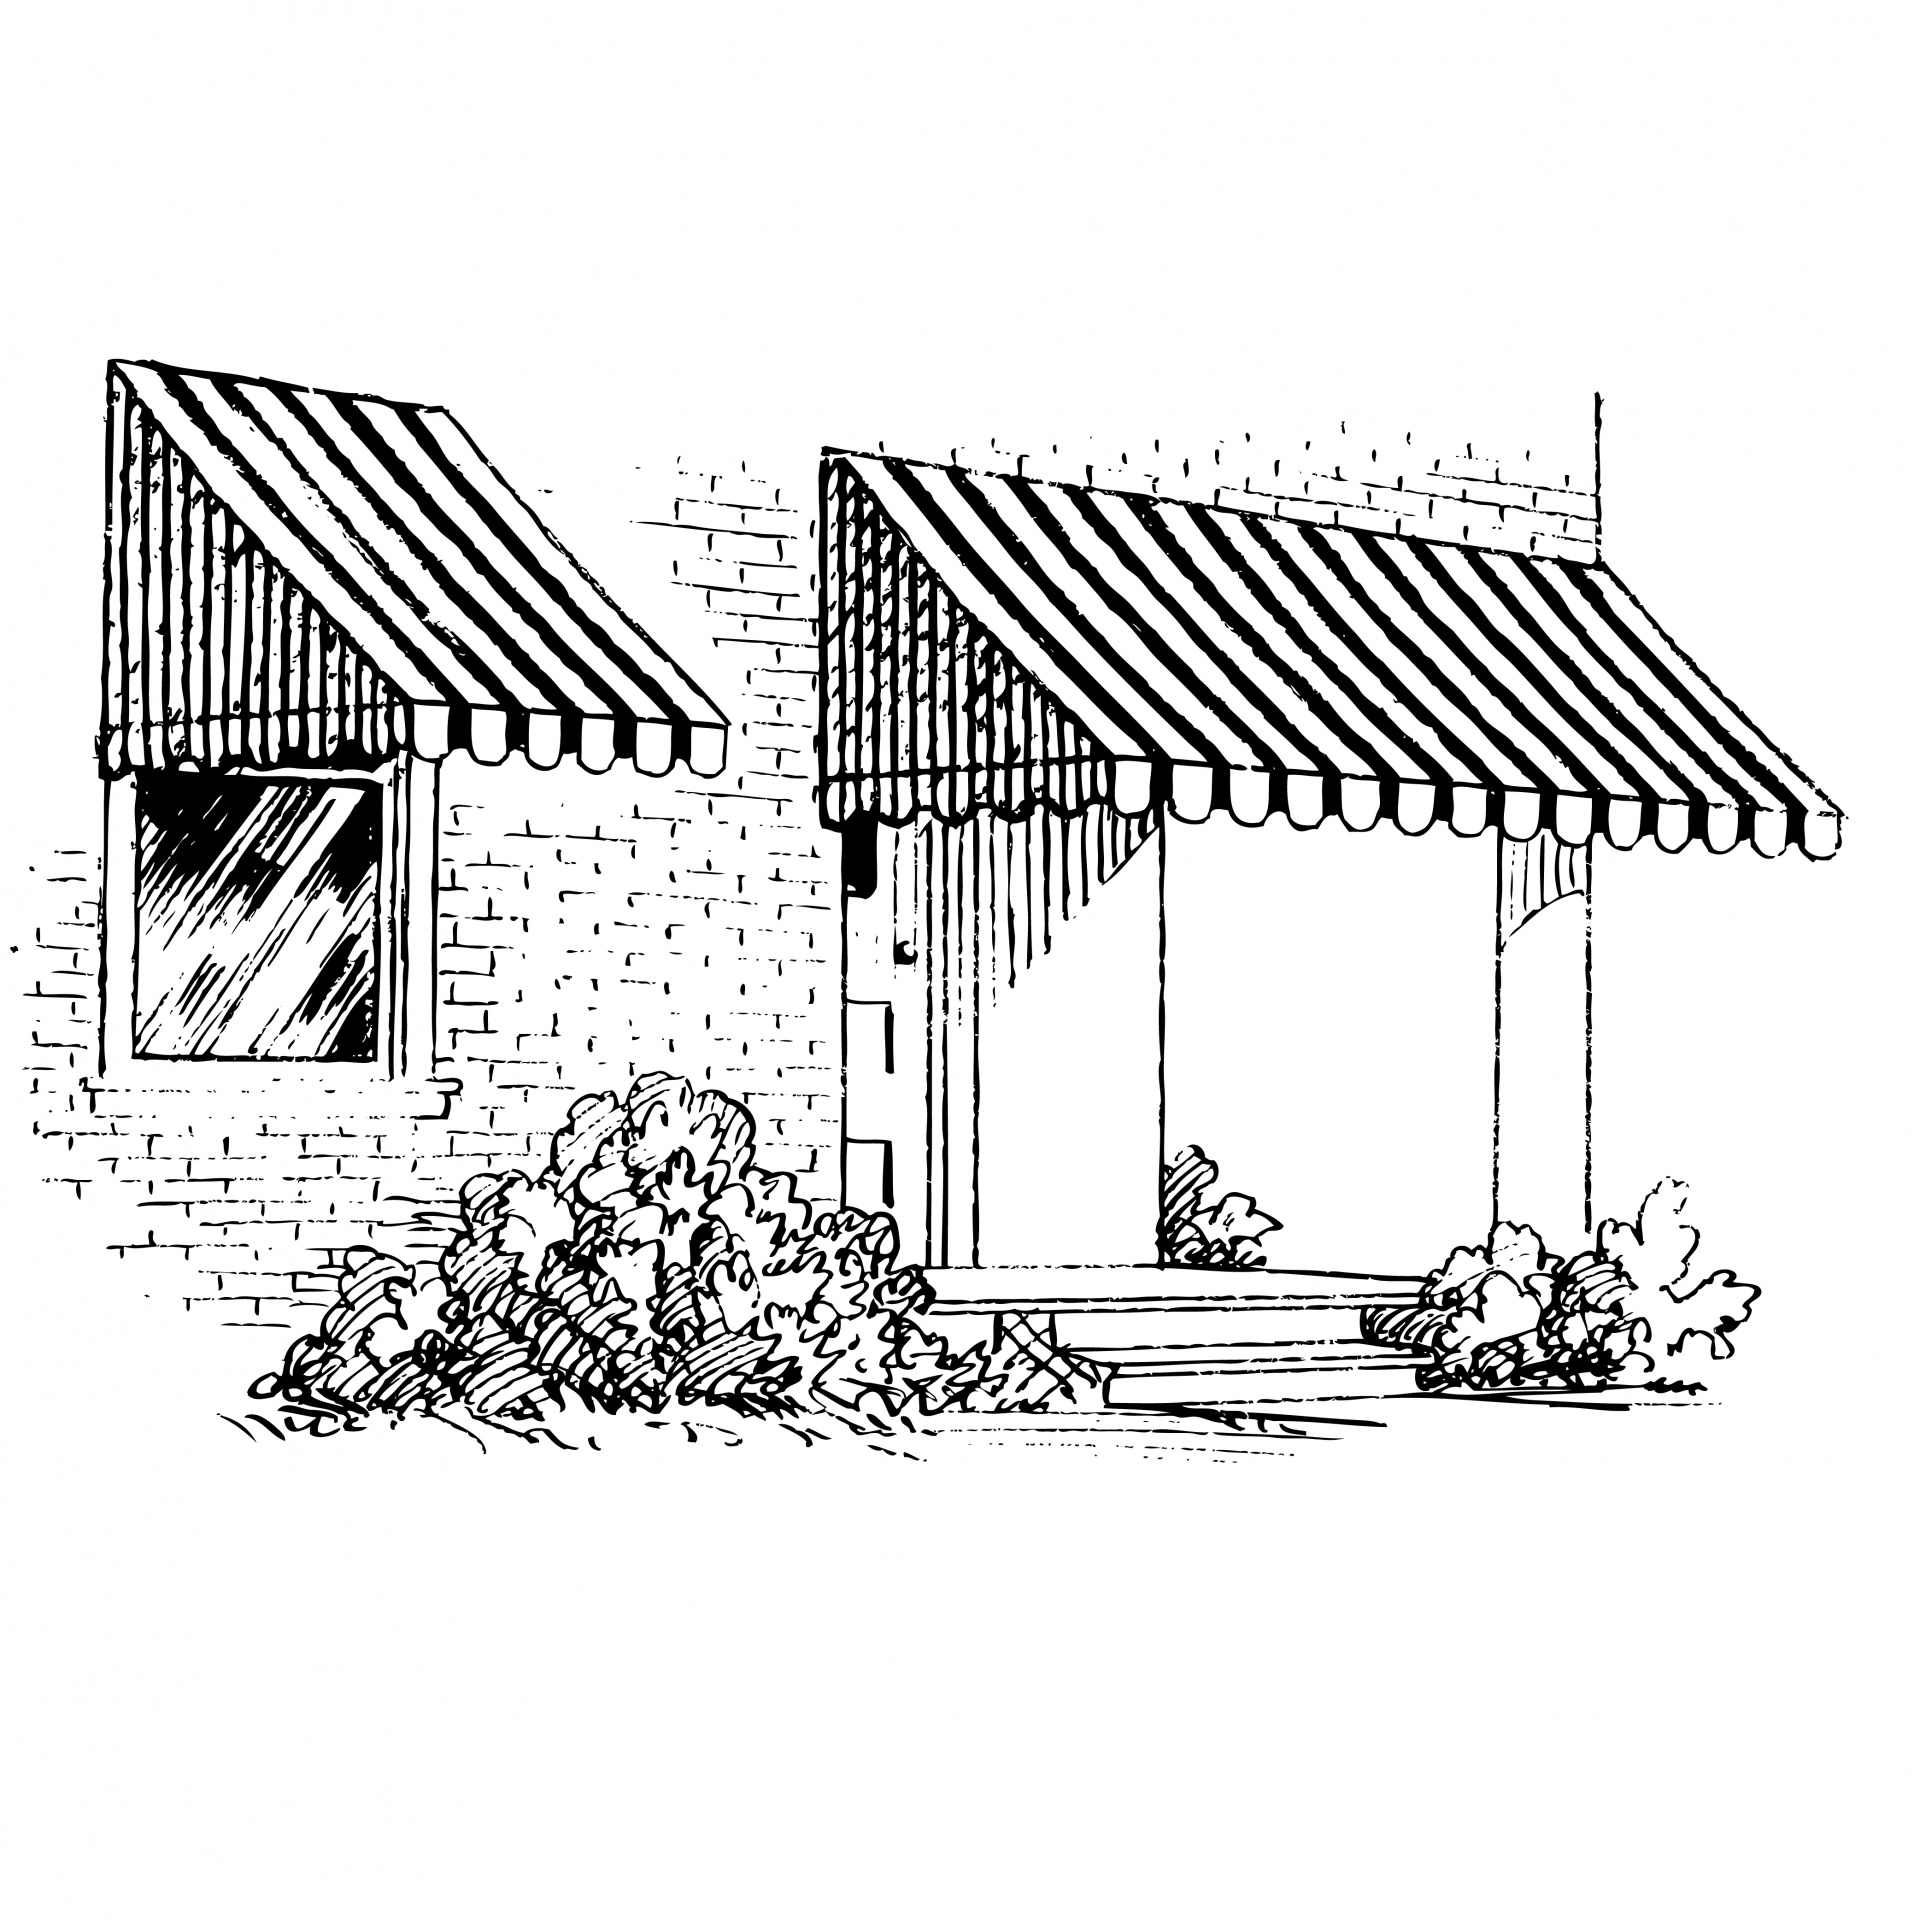 Awning clipart #1, Download drawings